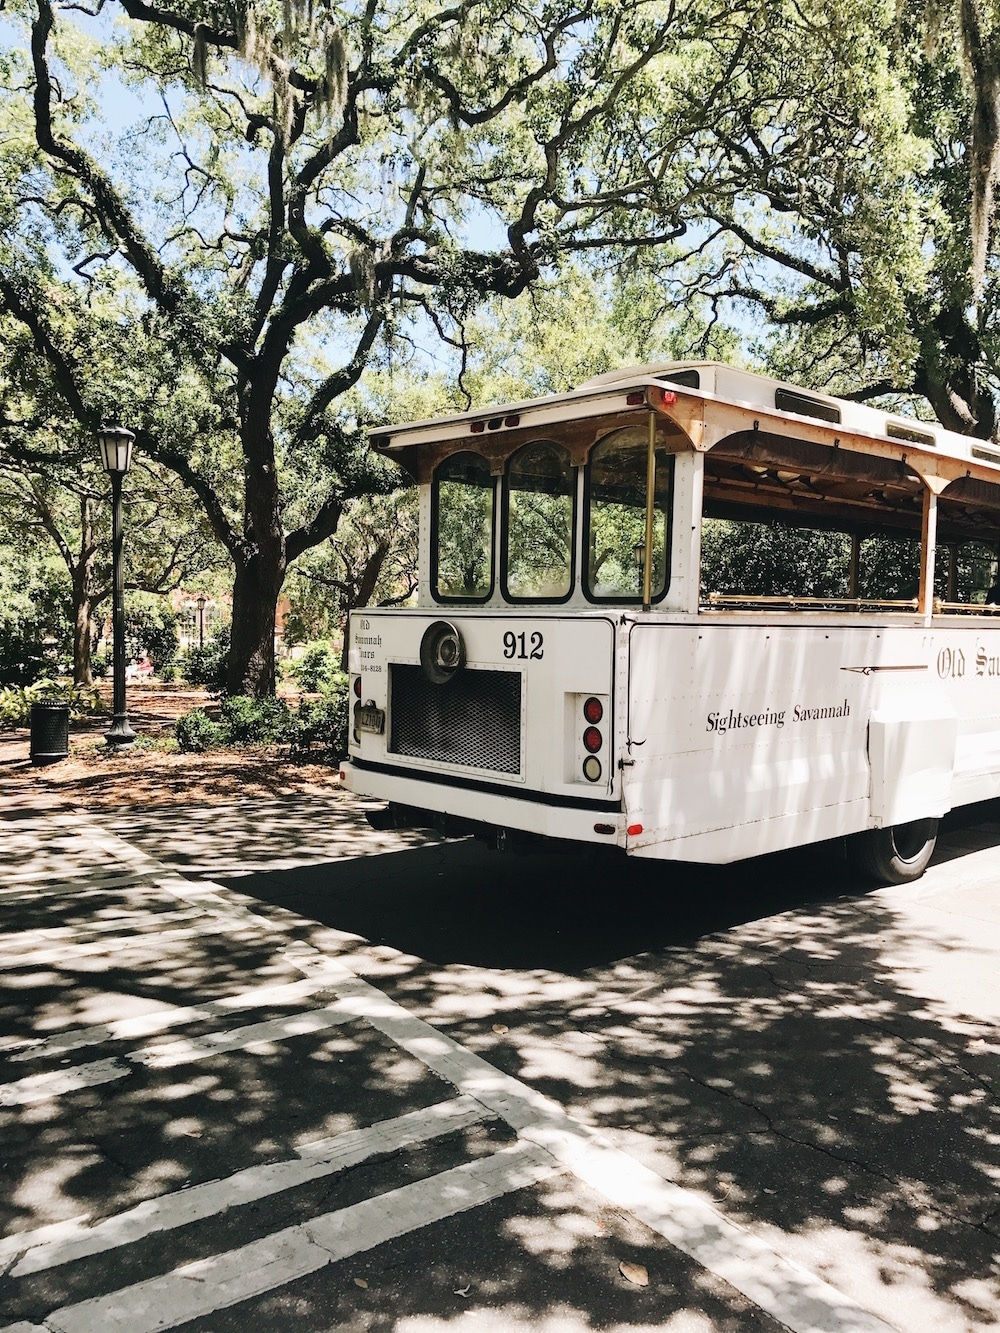 Old Savannah Trolley Tours are a great way to explore the city of Savannah, Georgia